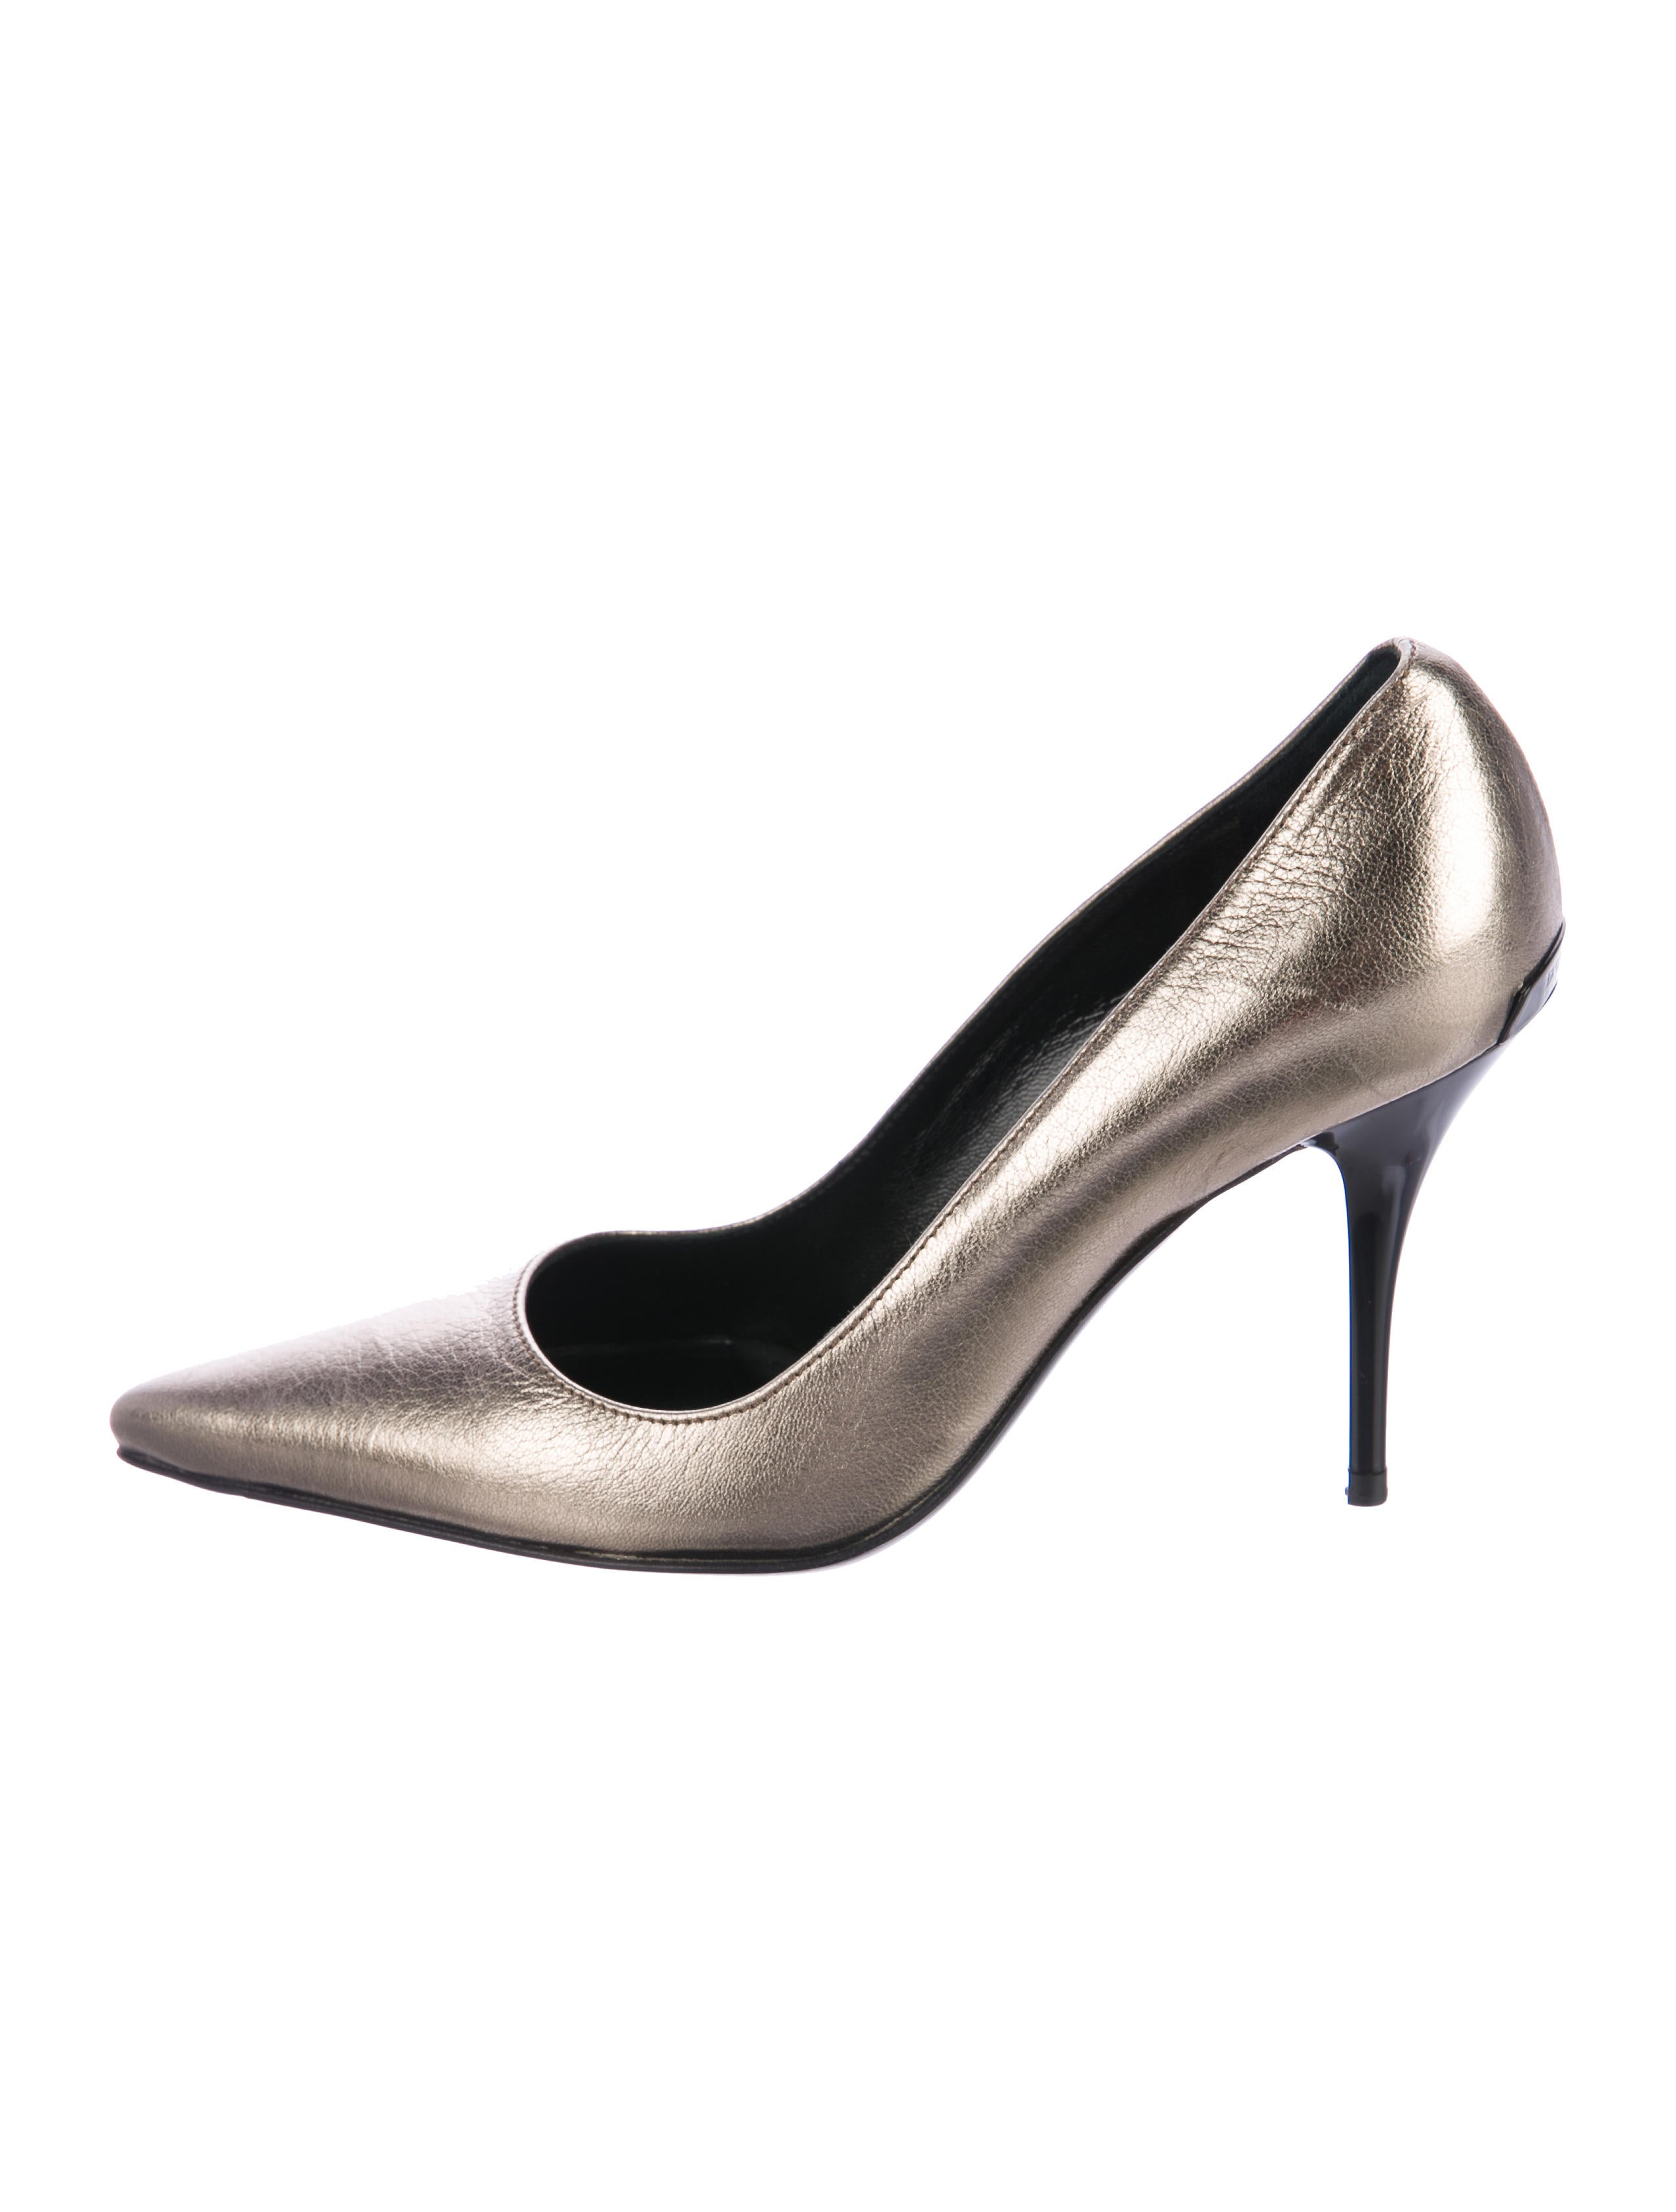 Burberry Metallic Pointed-Toe Pumps cheap sale visit new discount low price fee shipping with paypal cheap price bUaUCYQKL